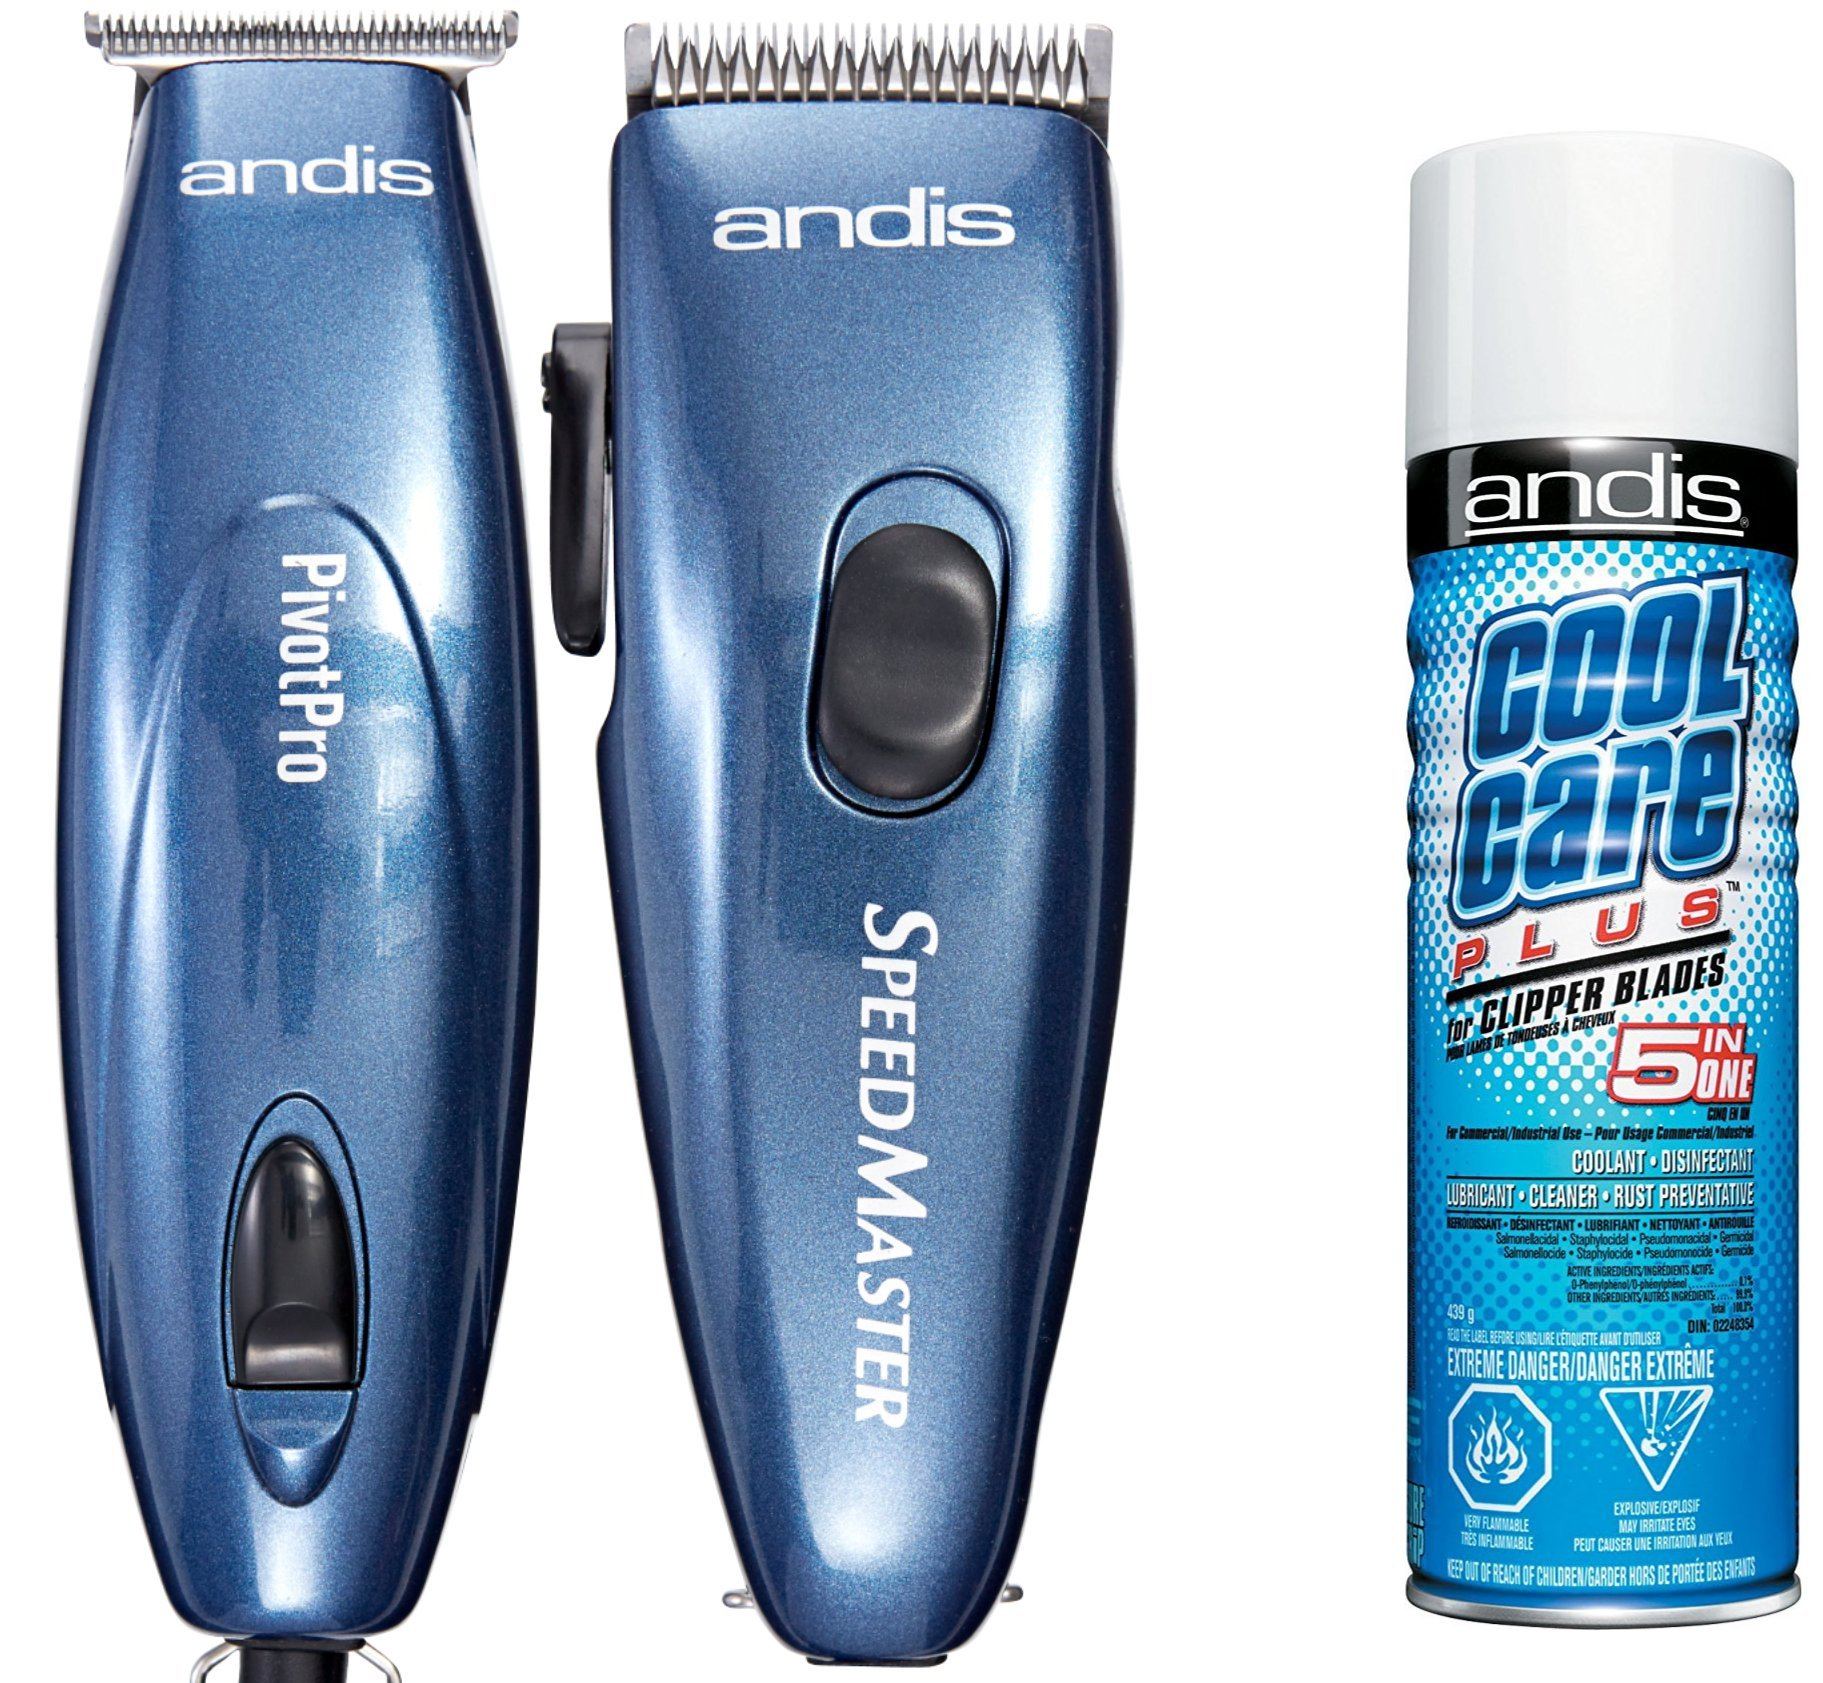 Andis LIGHTWEIGHT Men's Hair Clippers and Hair T-BLADE Trimmer Combo Set with BONUS FREE Andis Cool Care Plus Clipper Blade Cleaner